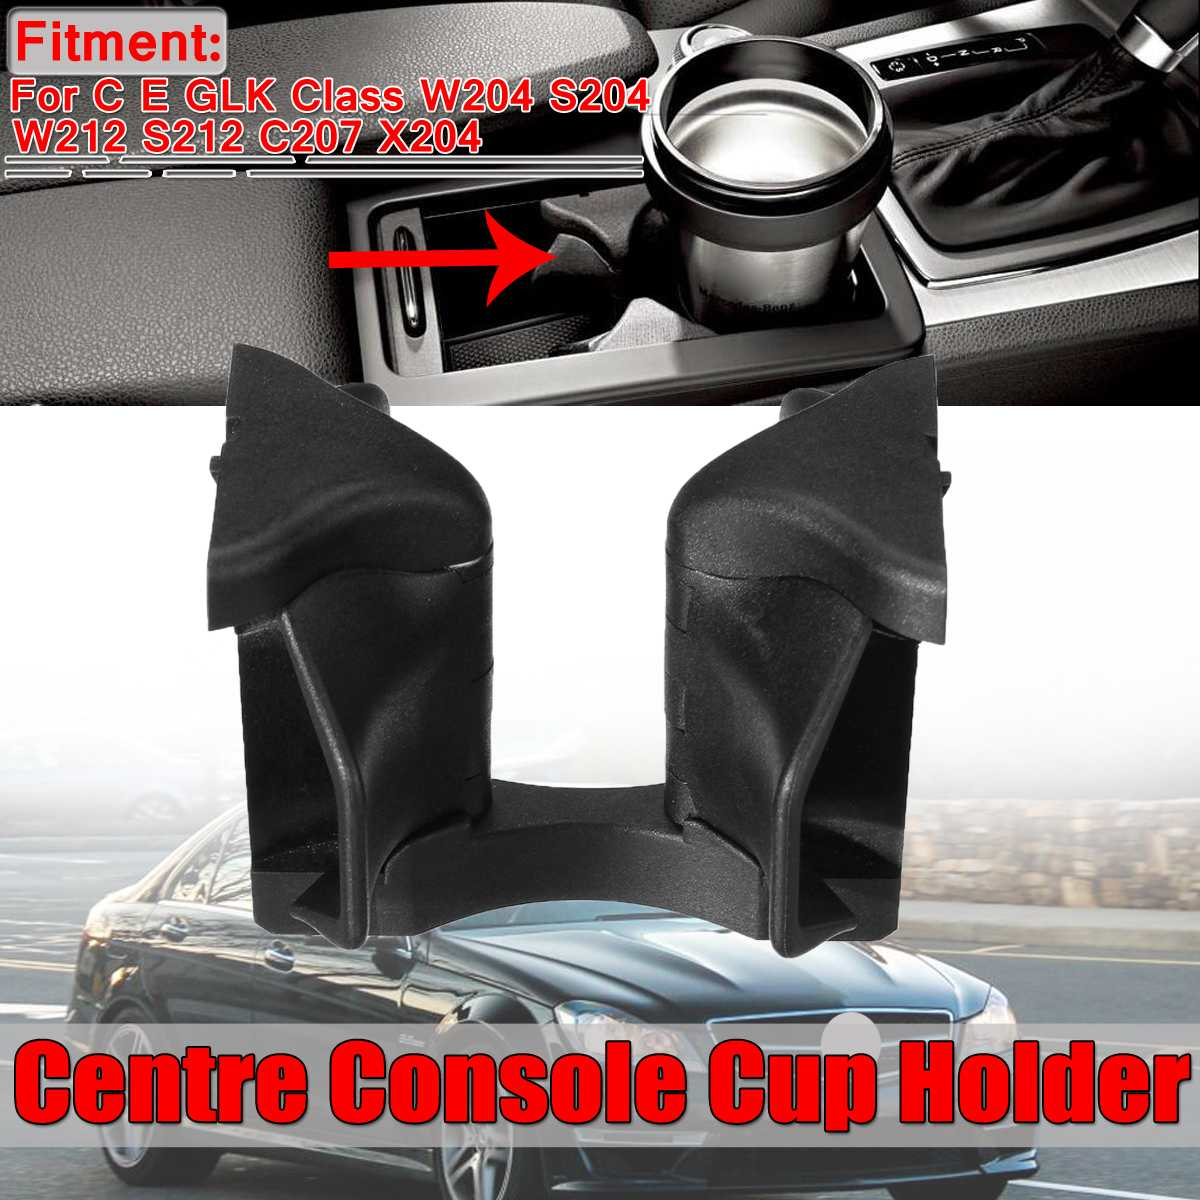 New W204 Car Centre Console Drinks Cup Holder Stand For Mercedes C E Class W204 S204 W212 S212 C207 GLK-Class X204 A2046802391